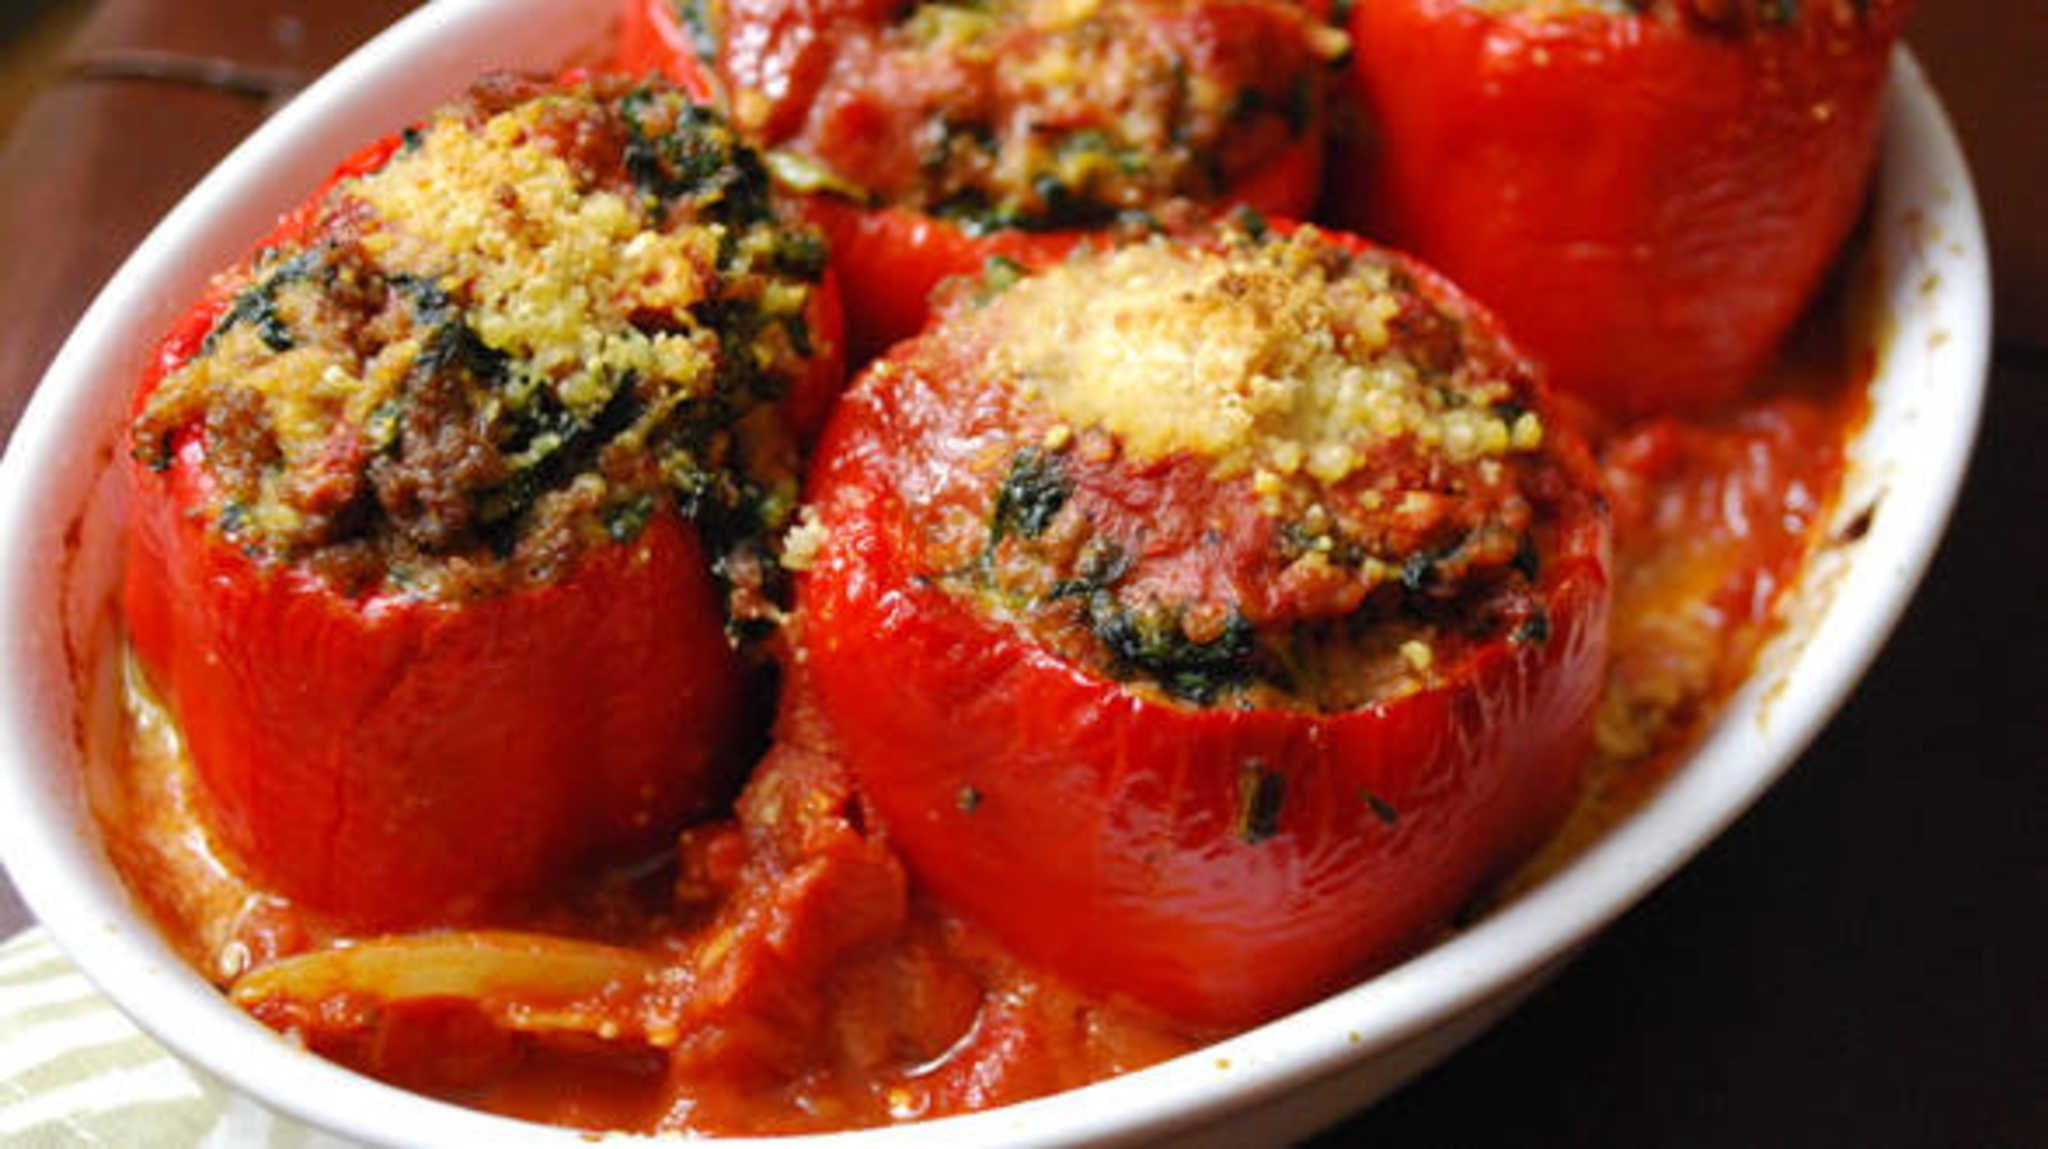 Meatball-Stuffed Peppers with Spinach and Garlic.